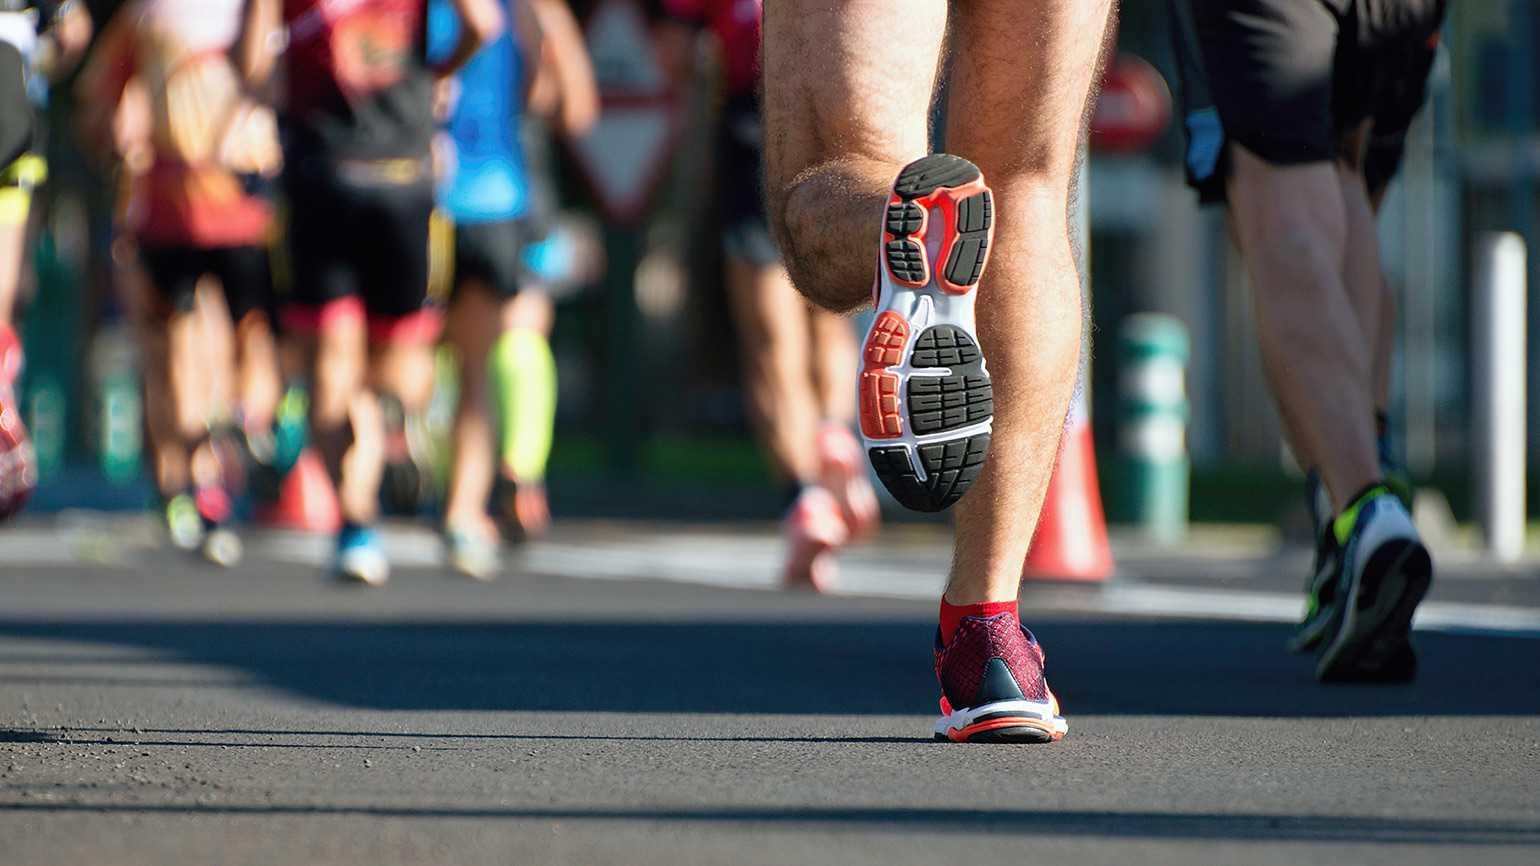 The feet of a group of long-distance runners